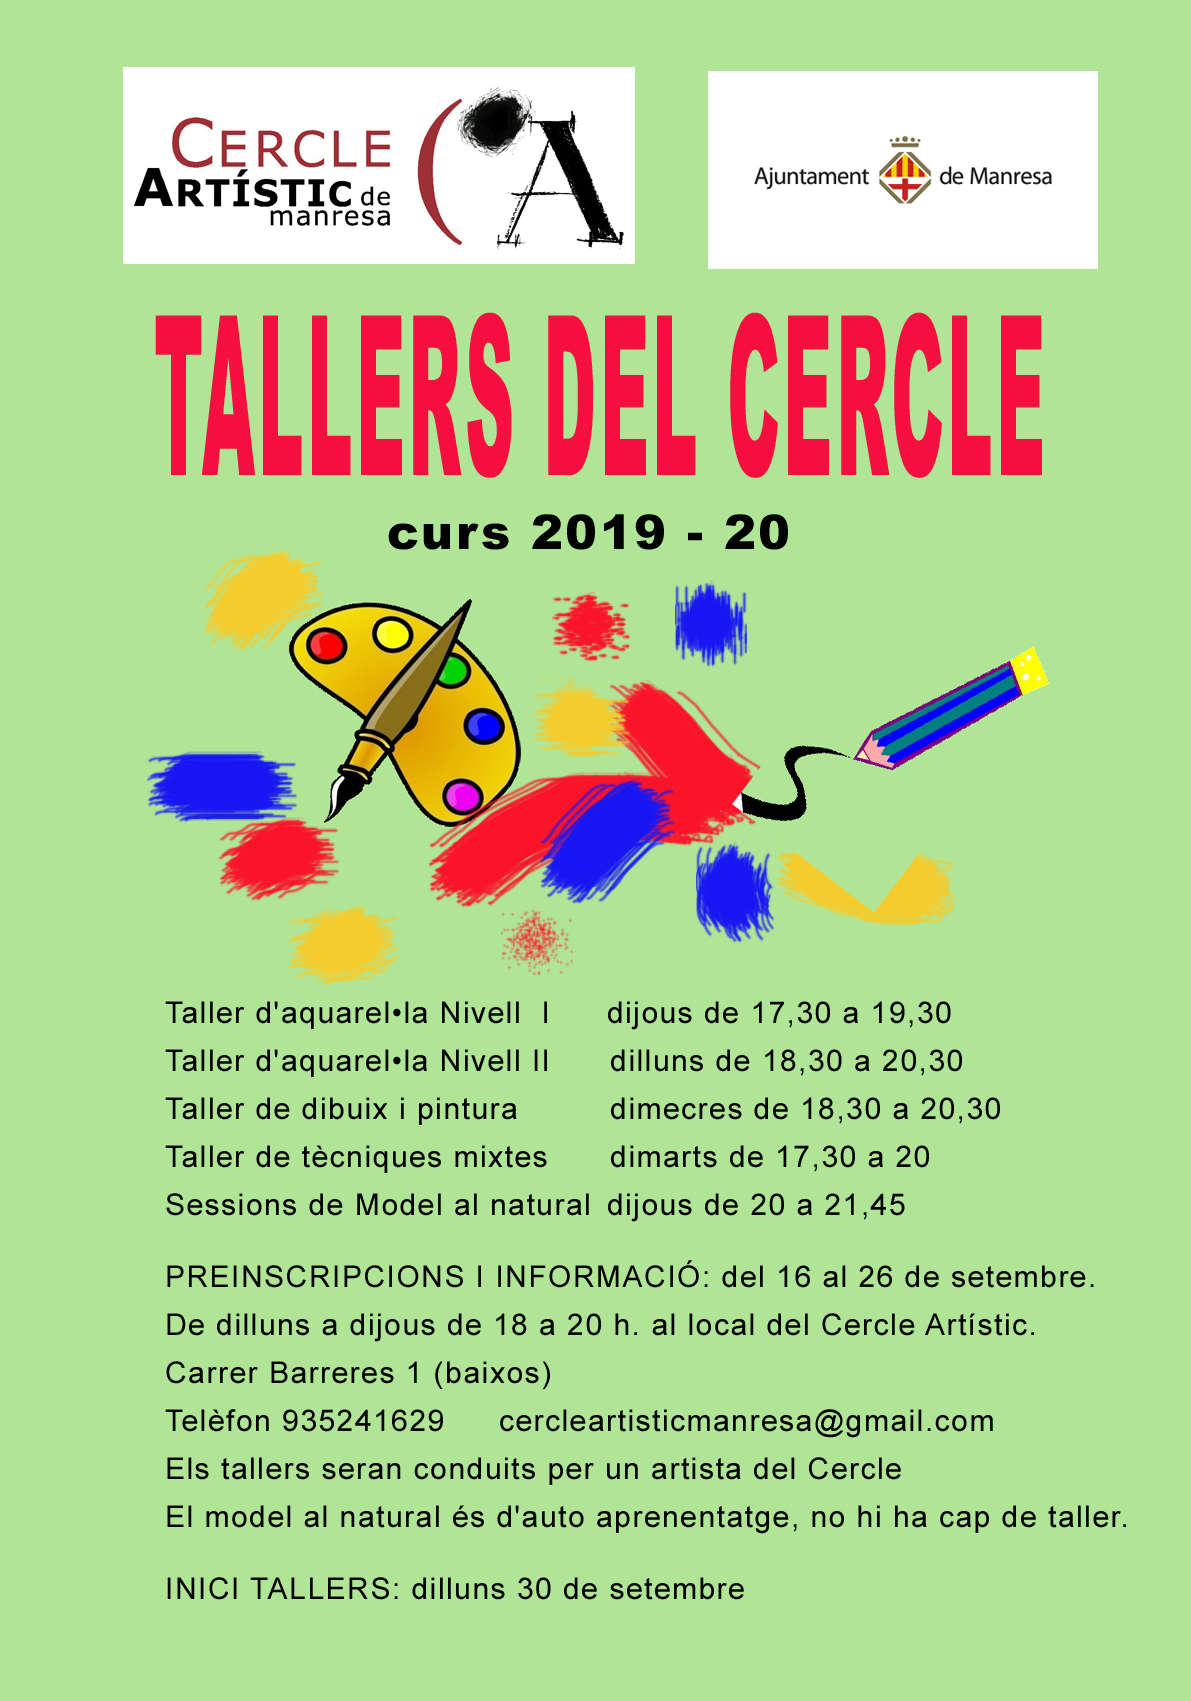 TALLERS DEL CERCLE (2019/20)